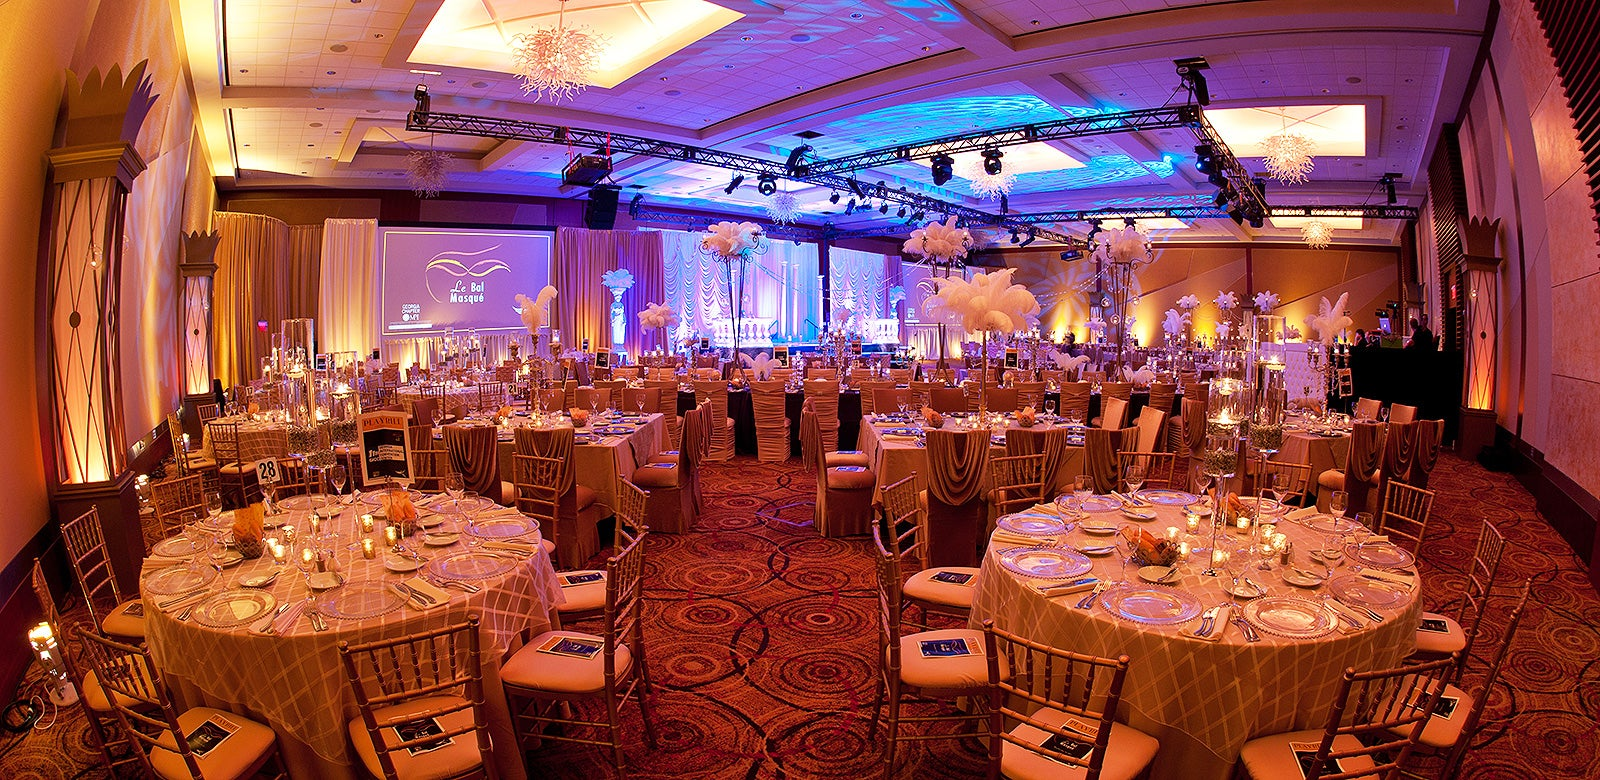 Atlanta Rehearsal Dinner Venue, Catering, And Planning